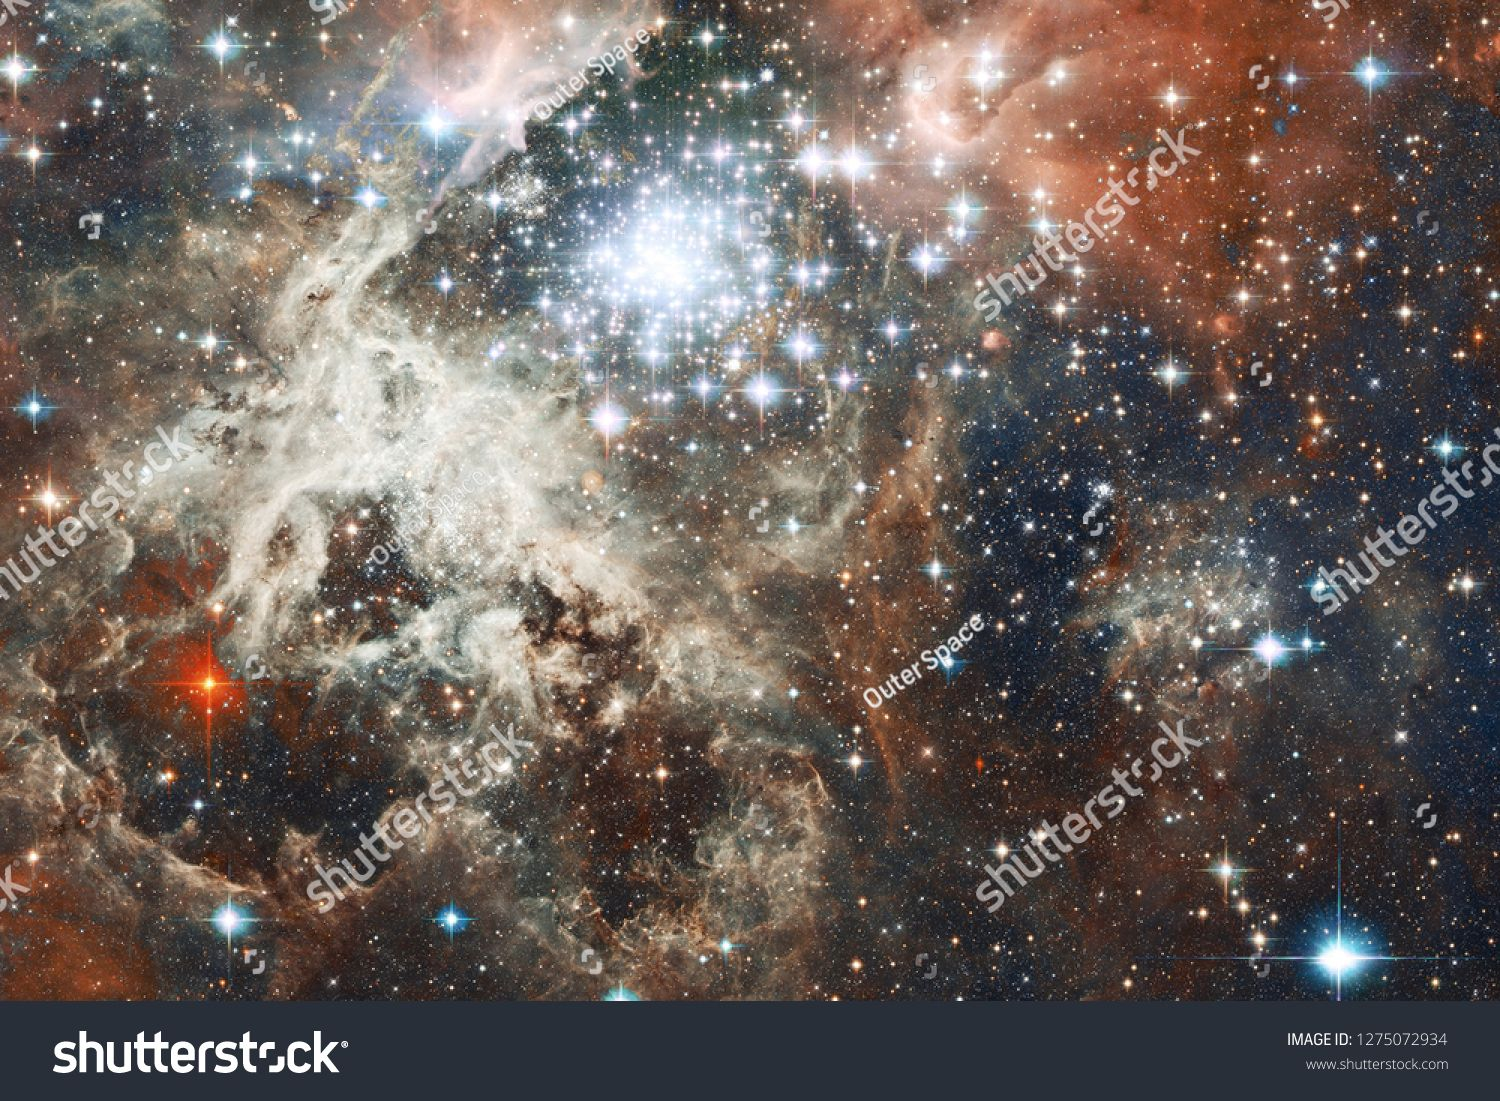 Beauty Deep Space Science Fiction Fantasy In High Resolution Ideal For Wallpaper Elements Of This Image F In 2020 Deep Space Science Fiction Fantasy Science Fiction